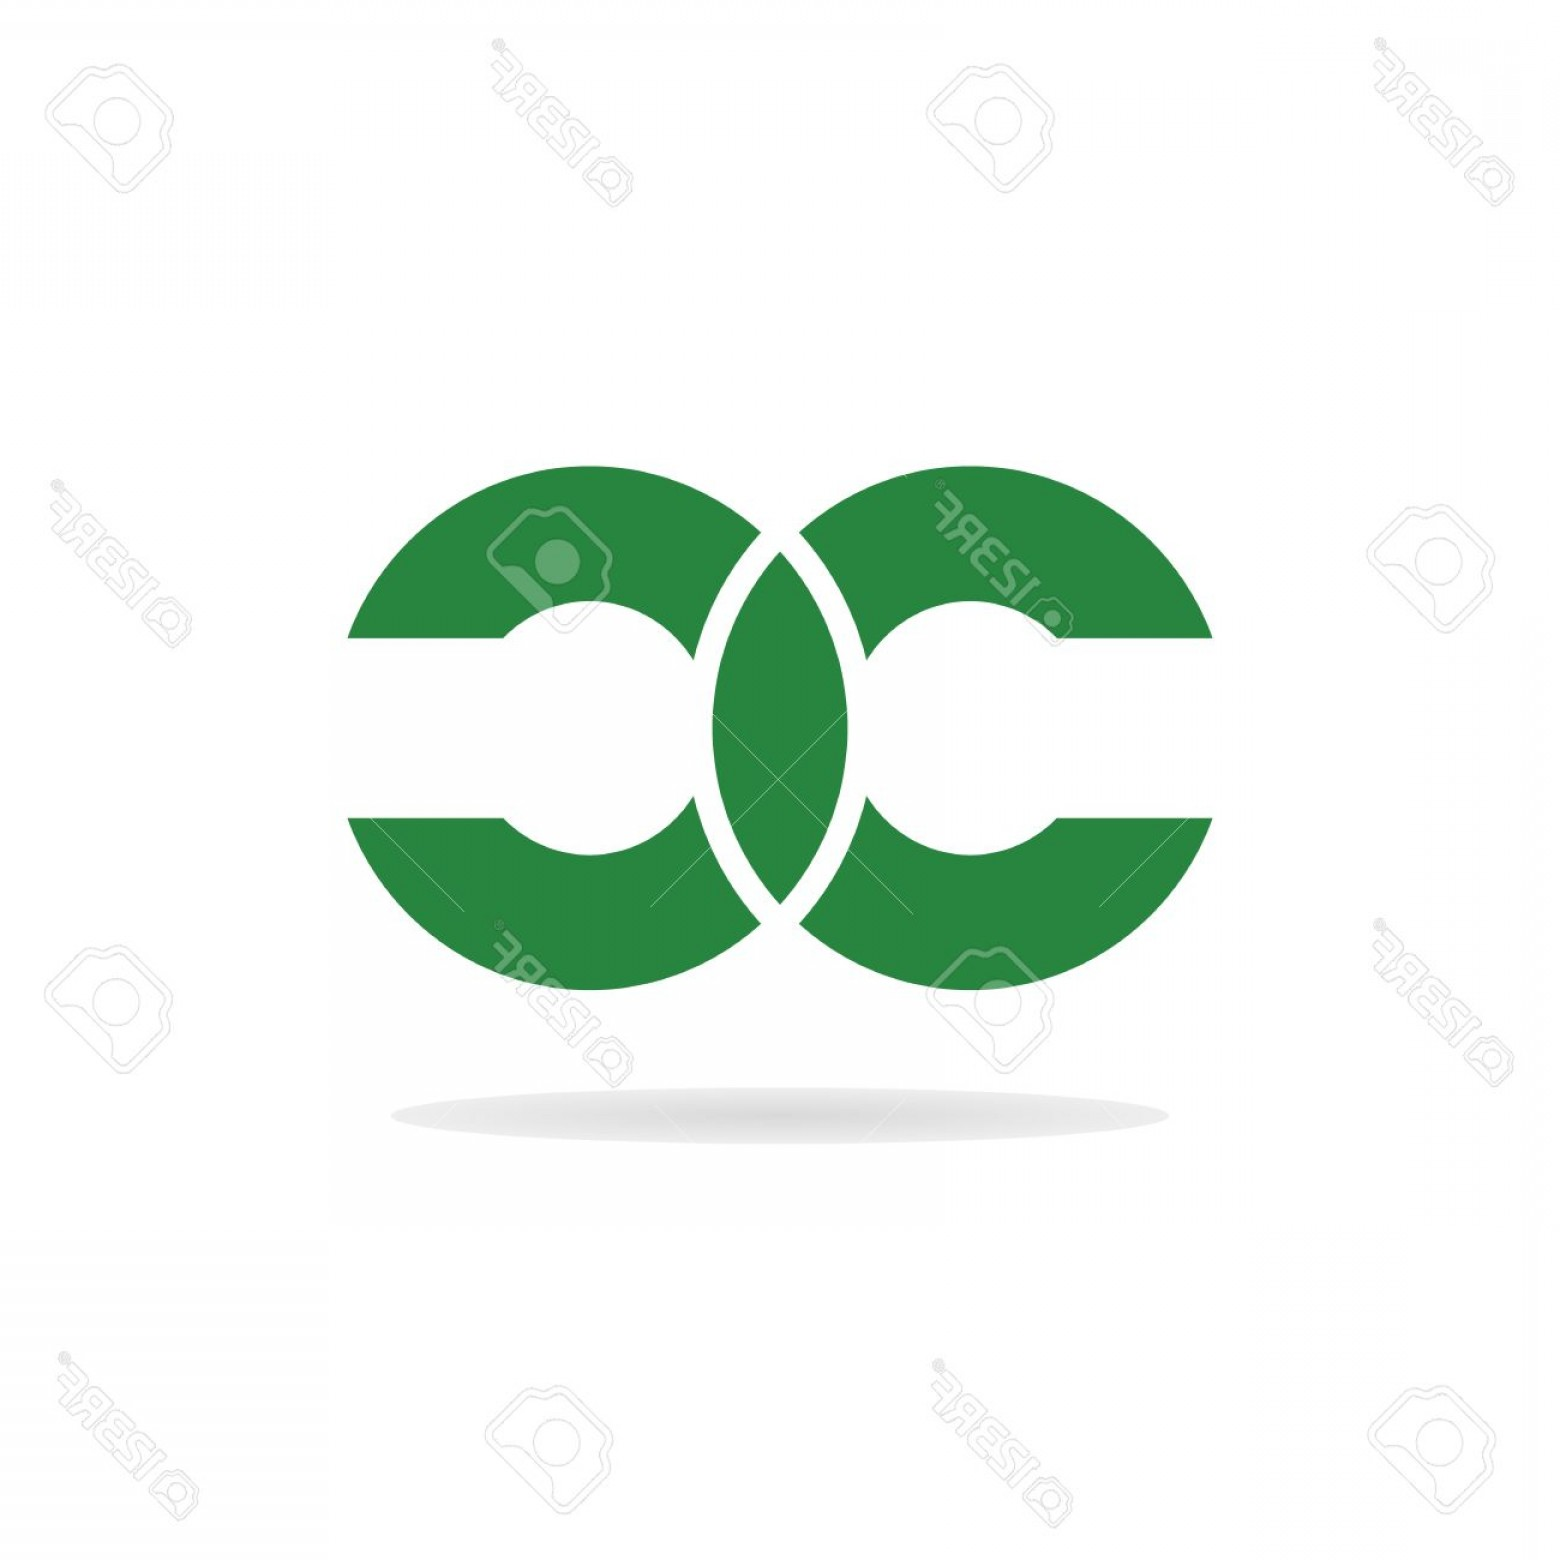 Log C Vector: Photostock Vector Abstract Letters C And C Logo Template Double Letter C Letter Logo Letters C And C Icon Business Log